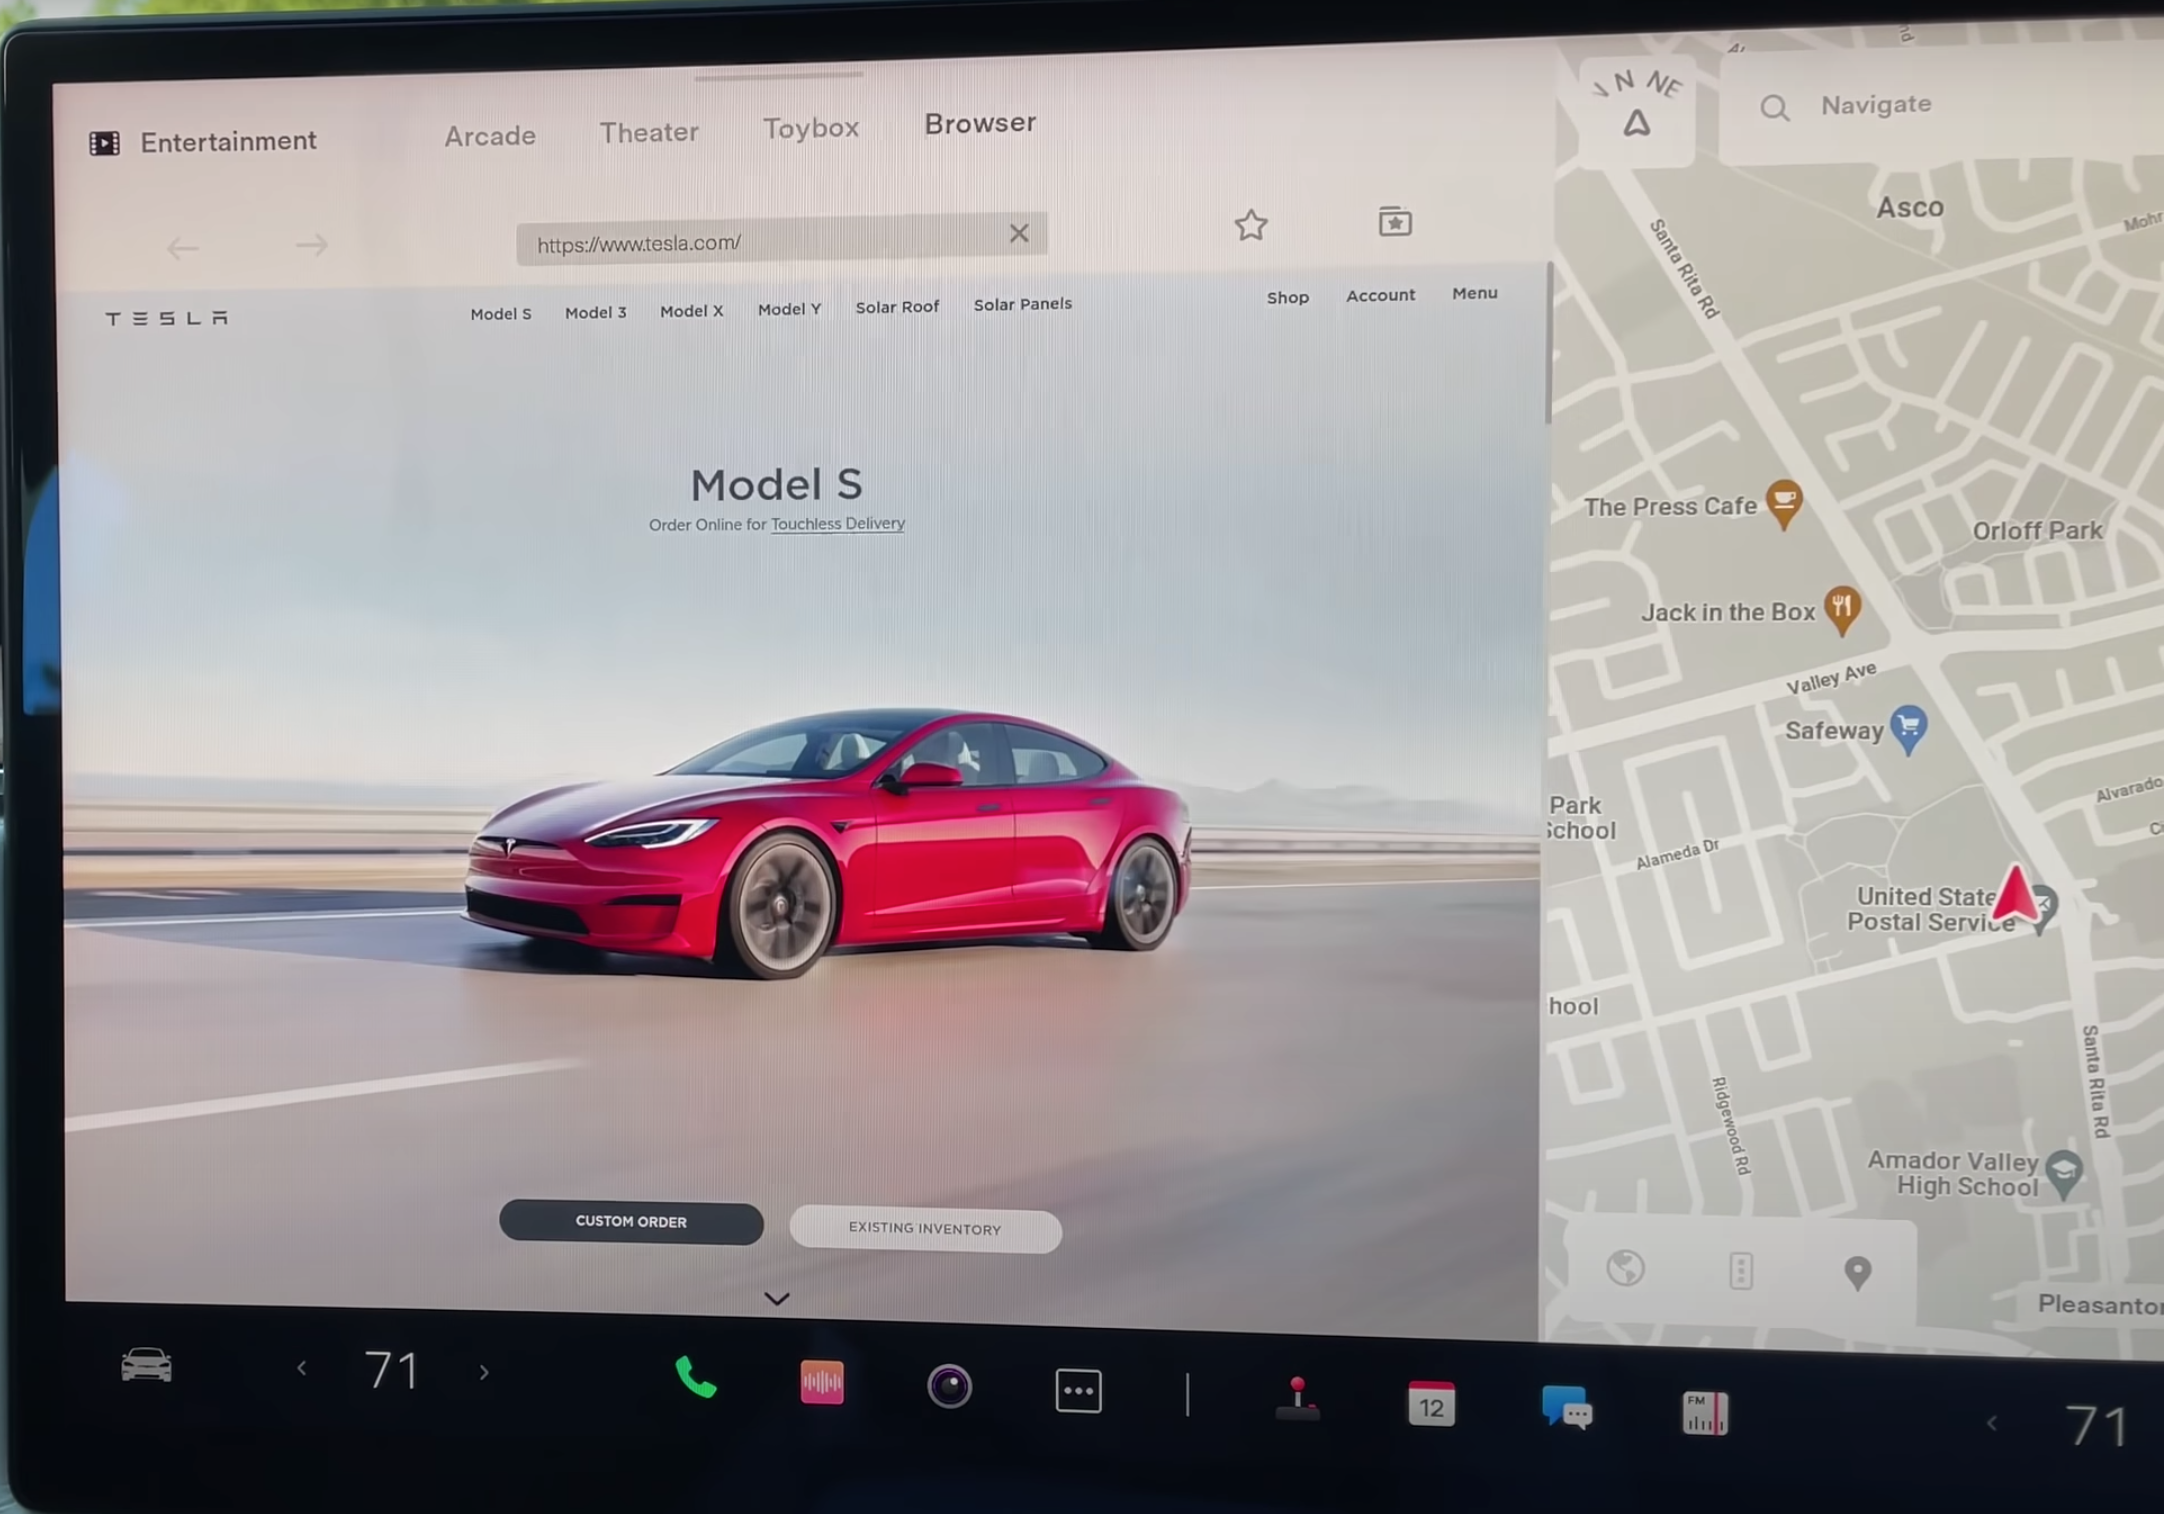 How the internet browser looks on the infotainment system on the left with a map view on the right